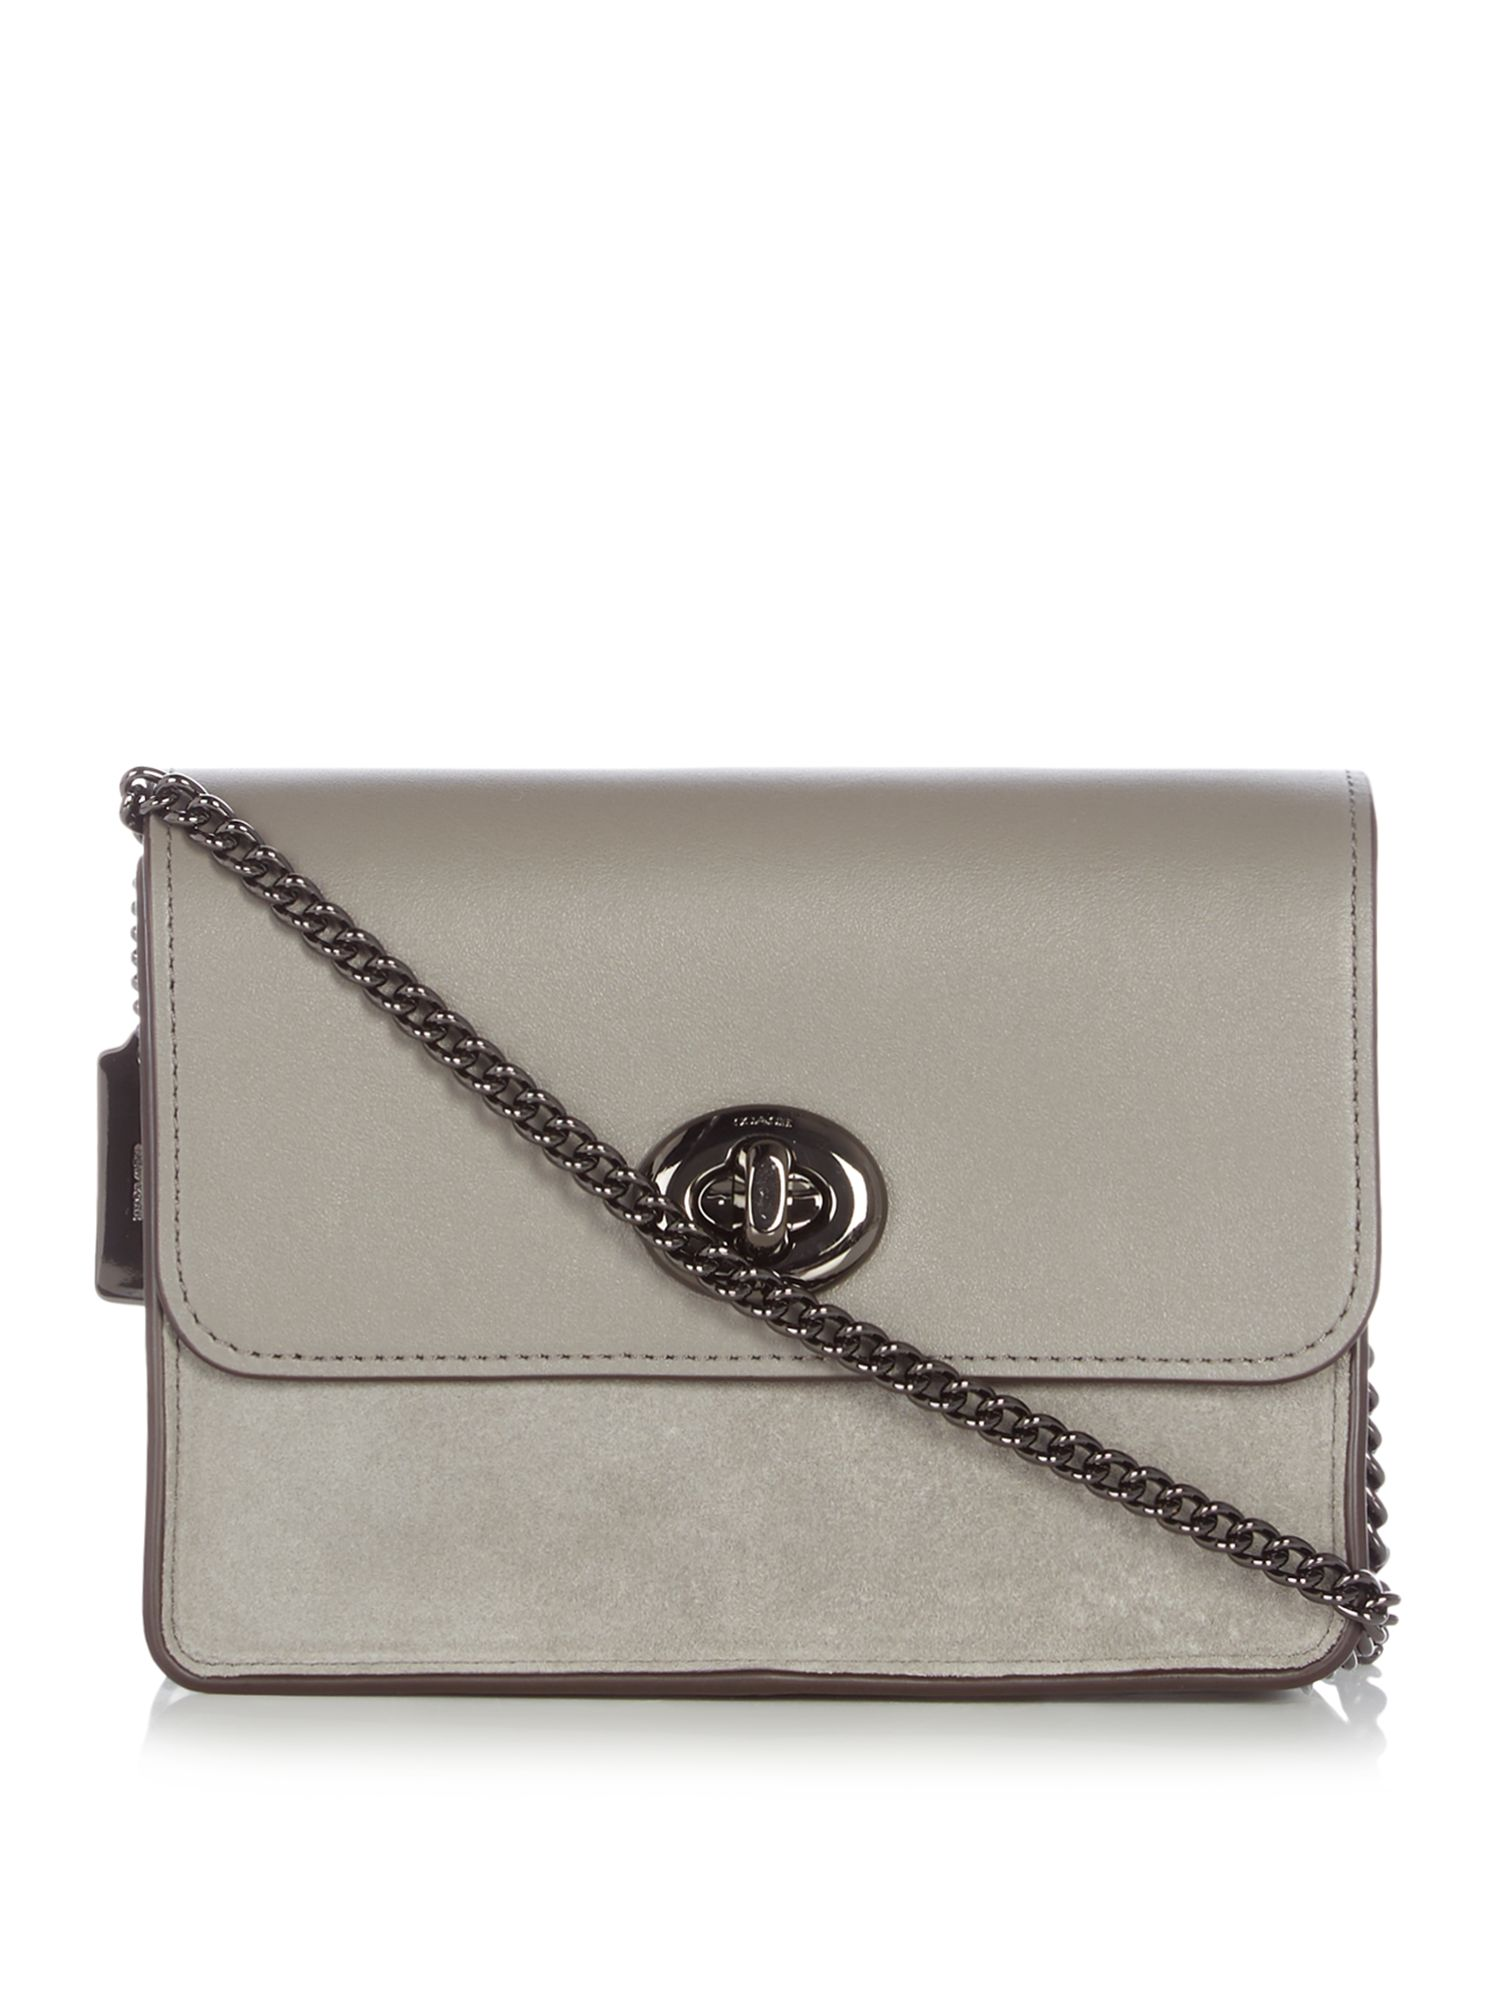 Coach Bowery suede crossbody bag, Grey